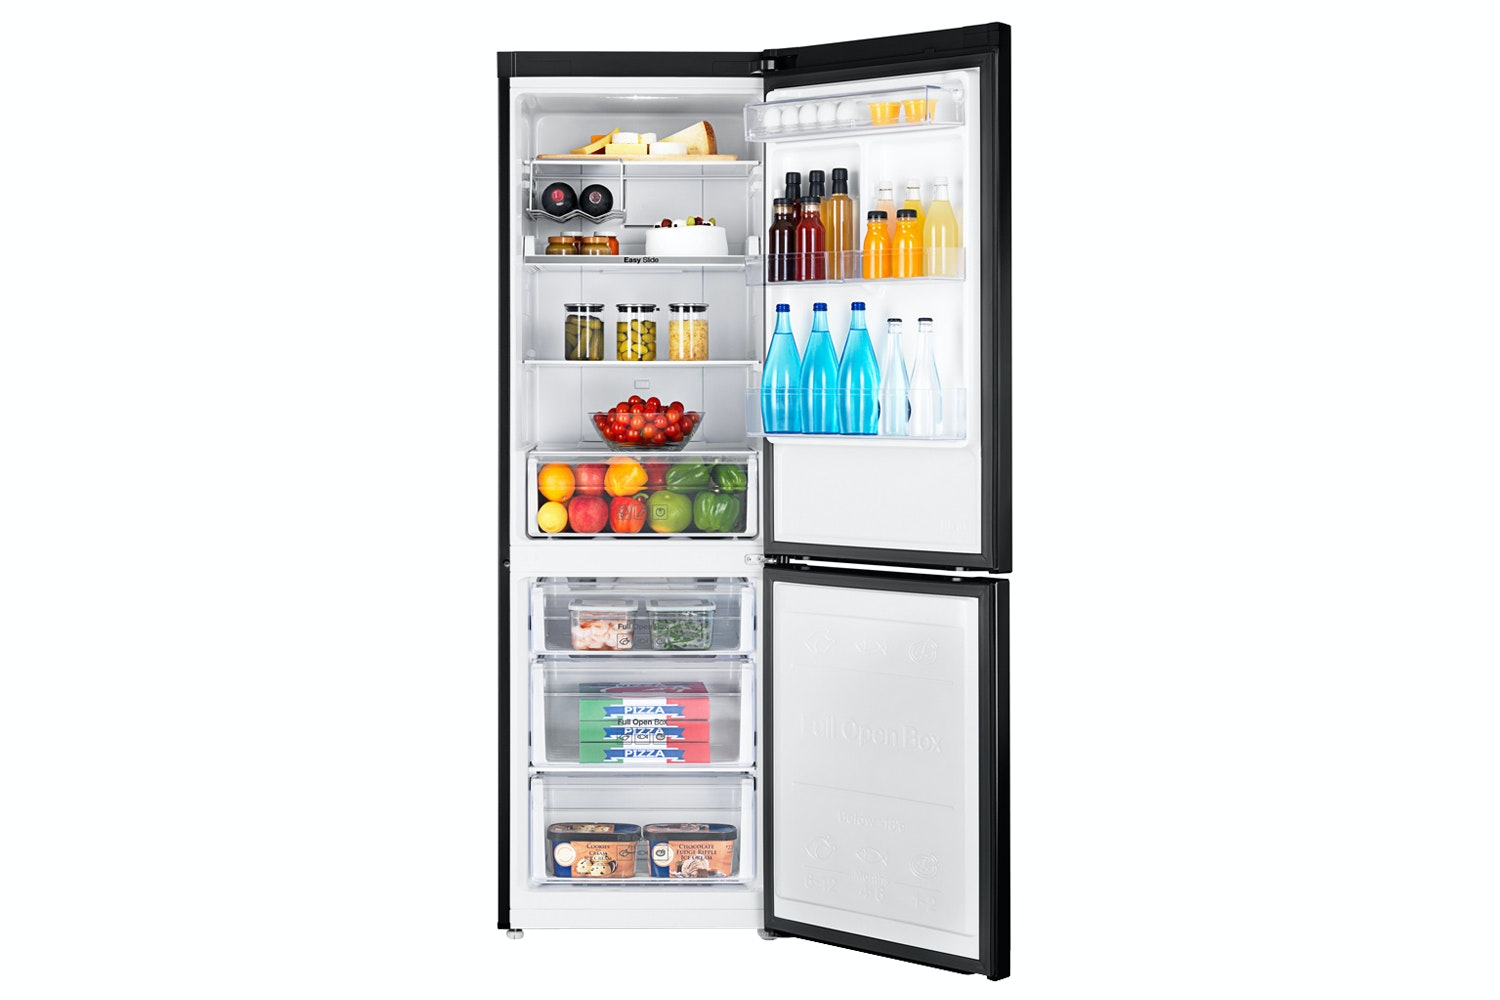 Samsung No Frost Fridge Freezer | RB31FERNDBC